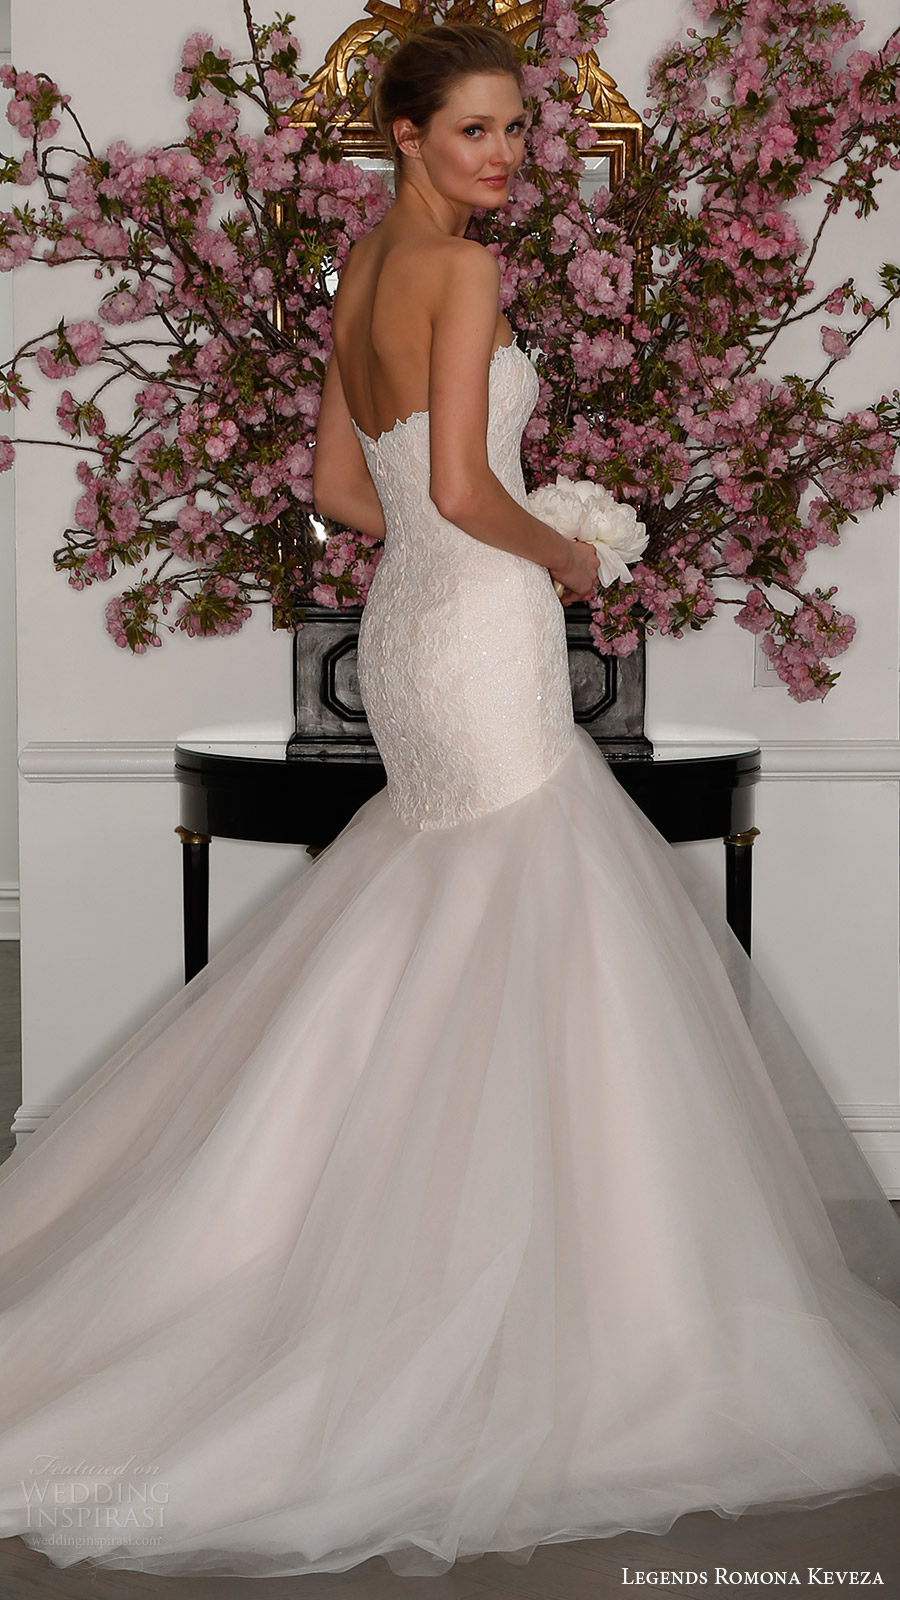 legends romona keveza bridal spring 2017 strapless sweetheart crystal lace mermaid wedding dress (l315) bv blush color